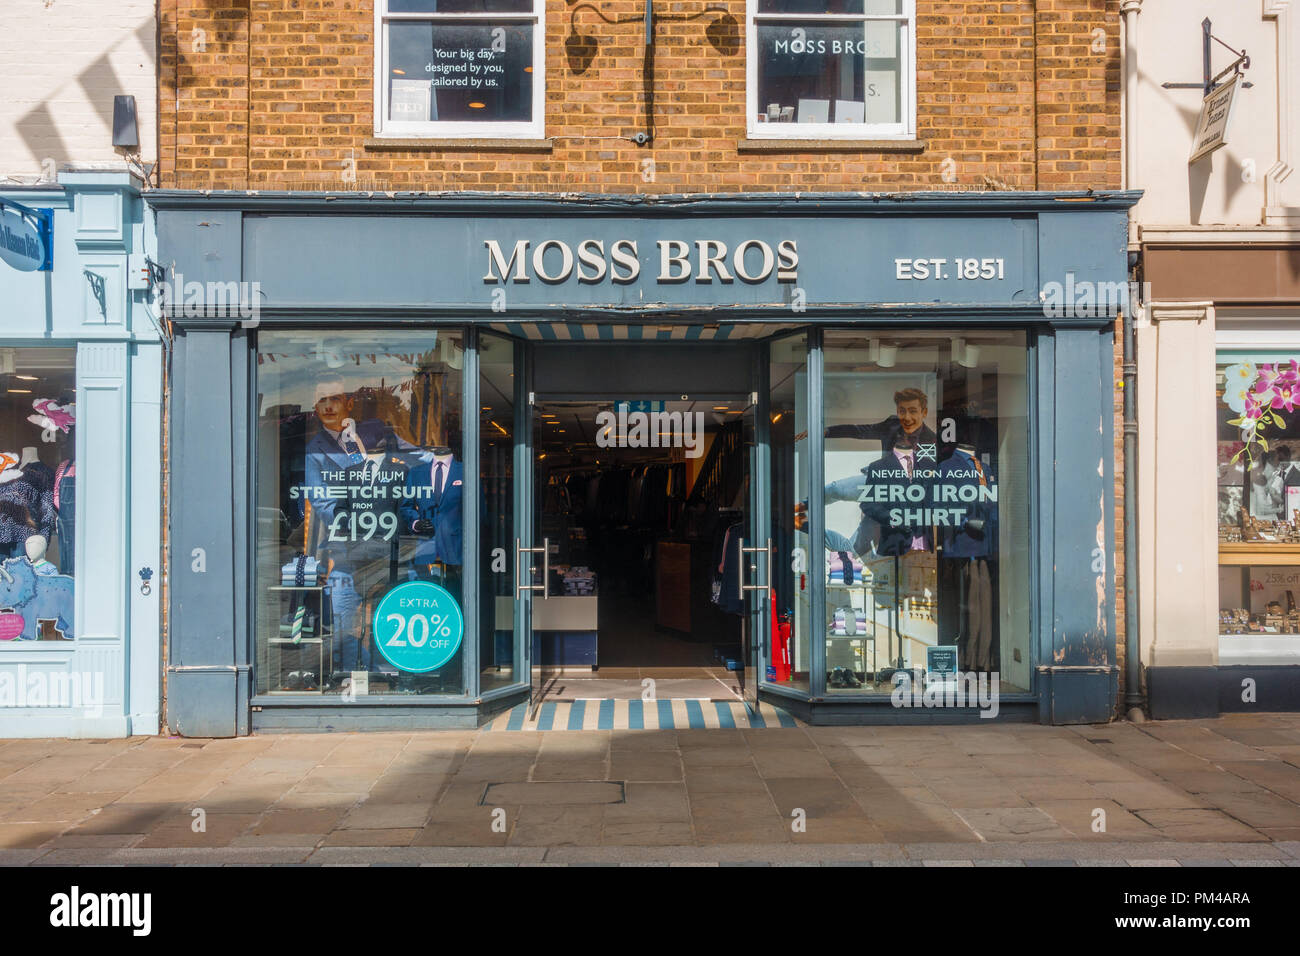 the moss Bros men's fashion store on Peascod Street in Windsor, UK. - Stock Image